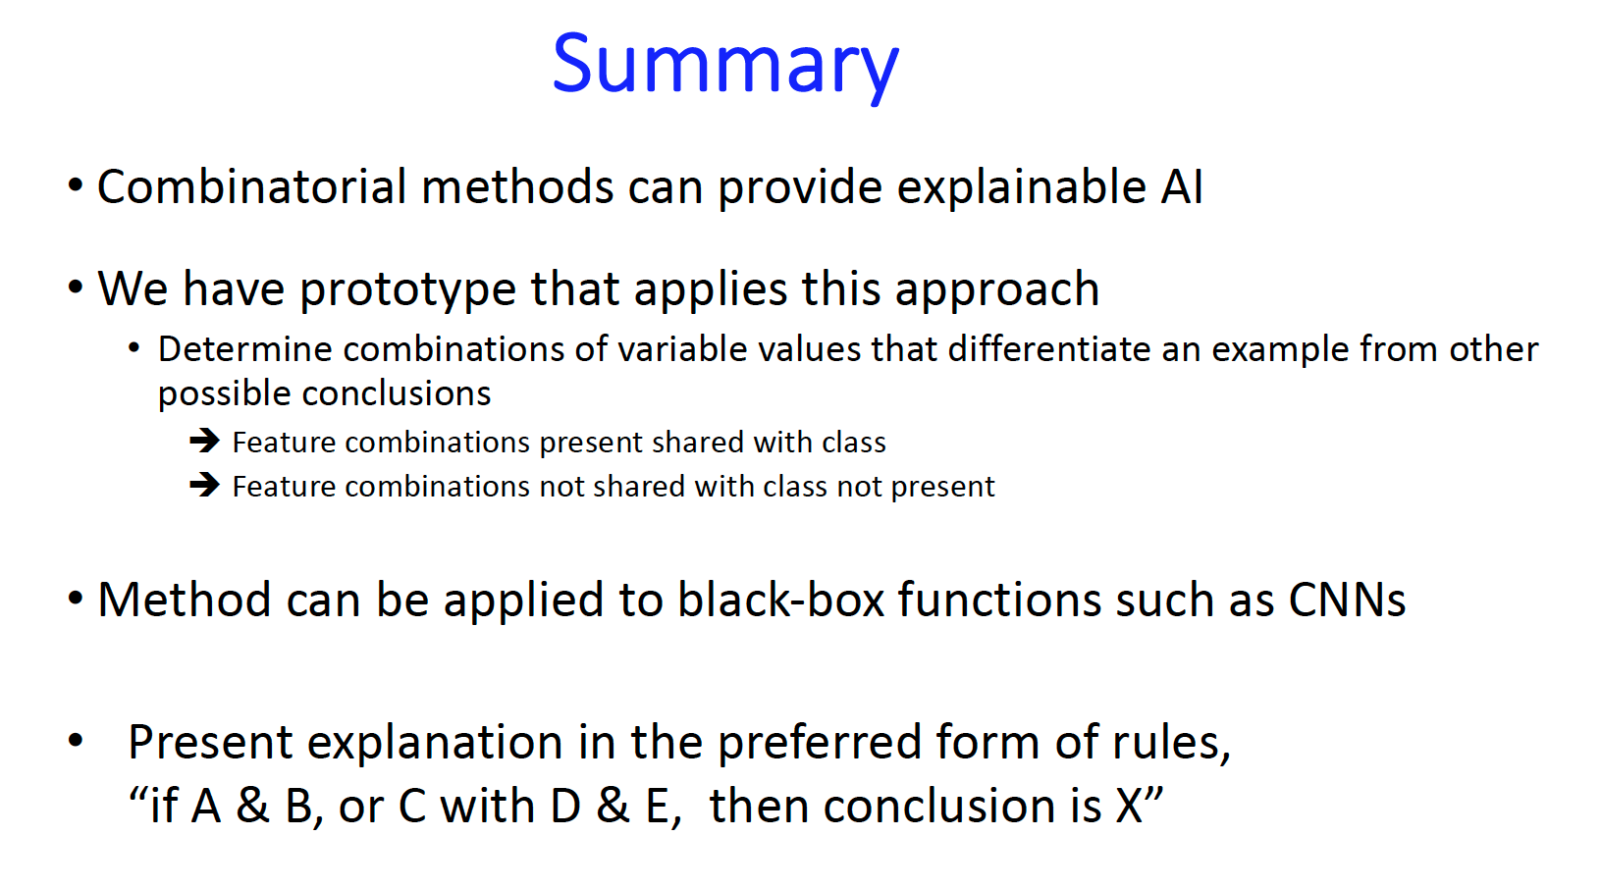 Summary, combinatorial methods and explainable AI